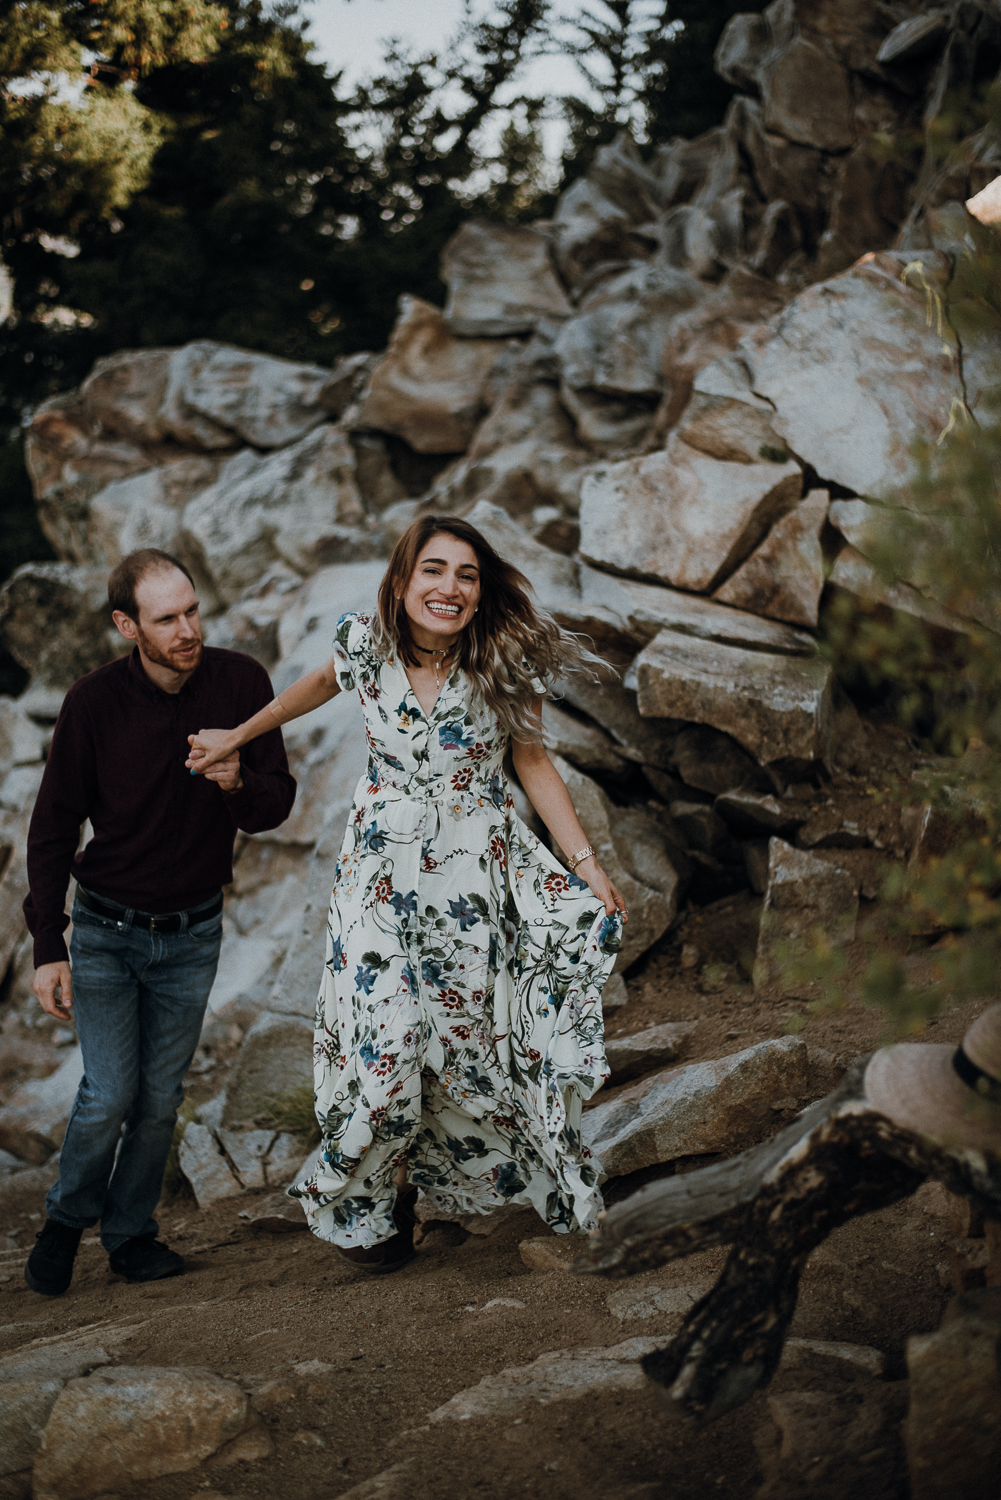 Mountain wedding photographer for Vail, Breckenridge, Keystone, Copper Mountain, Telluride, and Sapphire Point